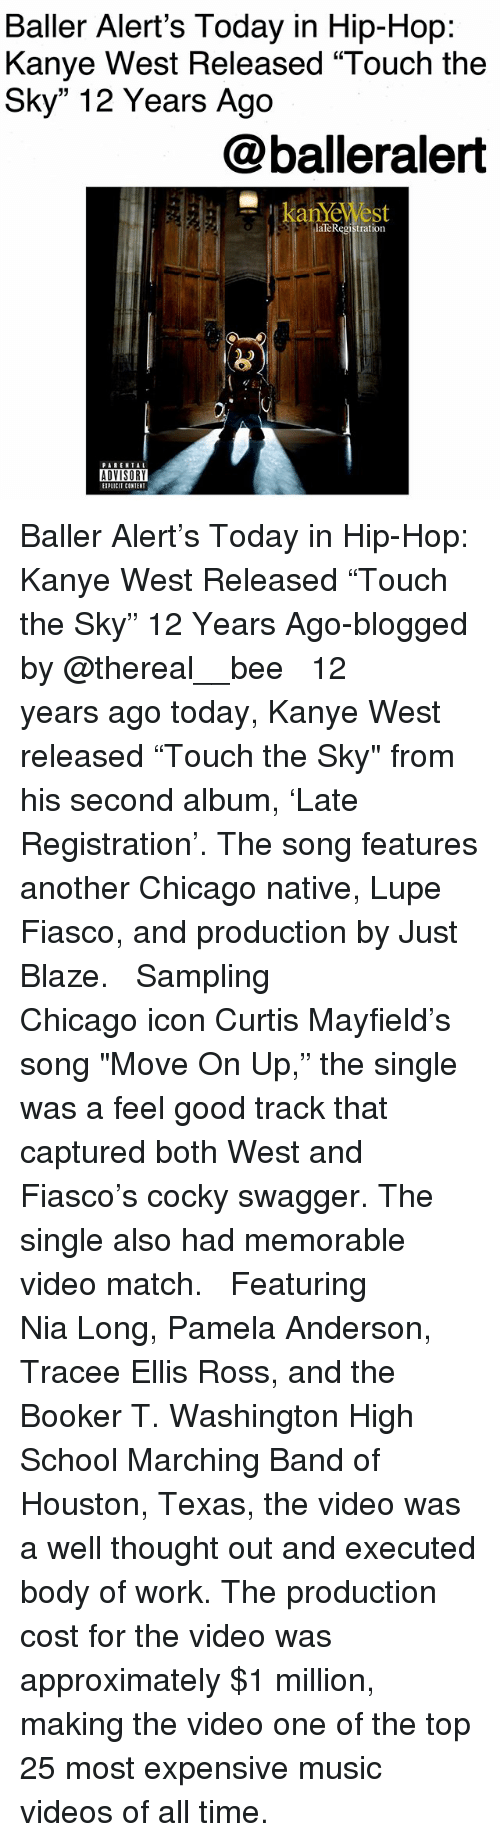 "tracee: Baller Alert's Today in Hip-Hop:  Kanye West Released ""Touch the  Sky"" 12 Years Ago  @balleralert  laTeRegistration  ADVISORY  IPLICIT CONTENT Baller Alert's Today in Hip-Hop: Kanye West Released ""Touch the Sky"" 12 Years Ago-blogged by @thereal__bee ⠀⠀⠀⠀⠀⠀⠀⠀⠀ ⠀⠀ 12 years ago today, Kanye West released ""Touch the Sky"" from his second album, 'Late Registration'. The song features another Chicago native, Lupe Fiasco, and production by Just Blaze. ⠀⠀⠀⠀⠀⠀⠀⠀⠀ ⠀⠀ Sampling Chicago icon Curtis Mayfield's song ""Move On Up,"" the single was a feel good track that captured both West and Fiasco's cocky swagger. The single also had memorable video match. ⠀⠀⠀⠀⠀⠀⠀⠀⠀ ⠀⠀ Featuring Nia Long, Pamela Anderson, Tracee Ellis Ross, and the Booker T. Washington High School Marching Band of Houston, Texas, the video was a well thought out and executed body of work. The production cost for the video was approximately $1 million, making the video one of the top 25 most expensive music videos of all time."